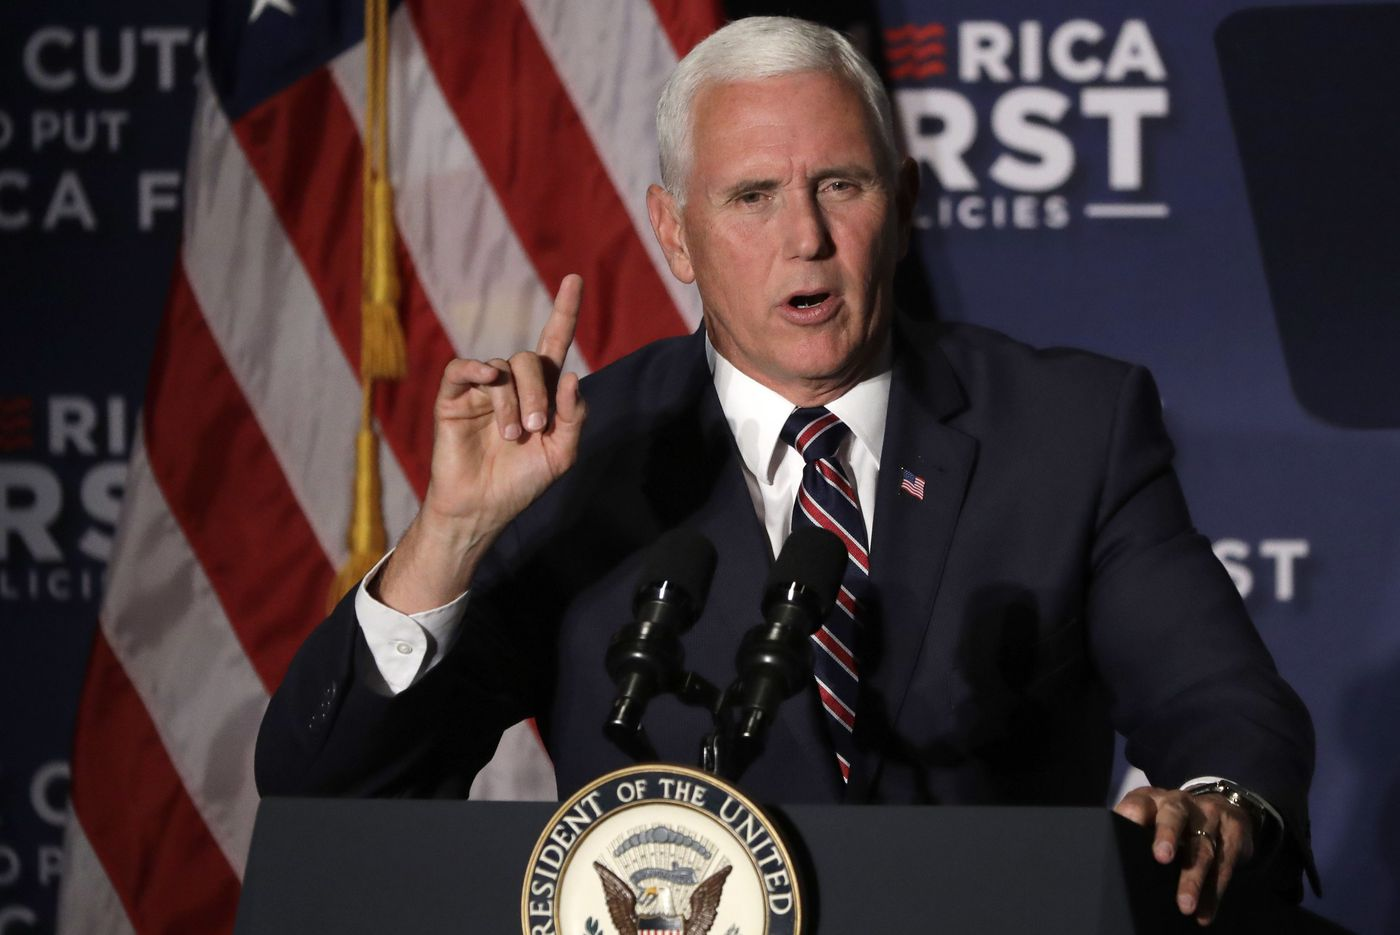 Vice President Mike Pence: Our agenda is working for Philadelphia | Opinion